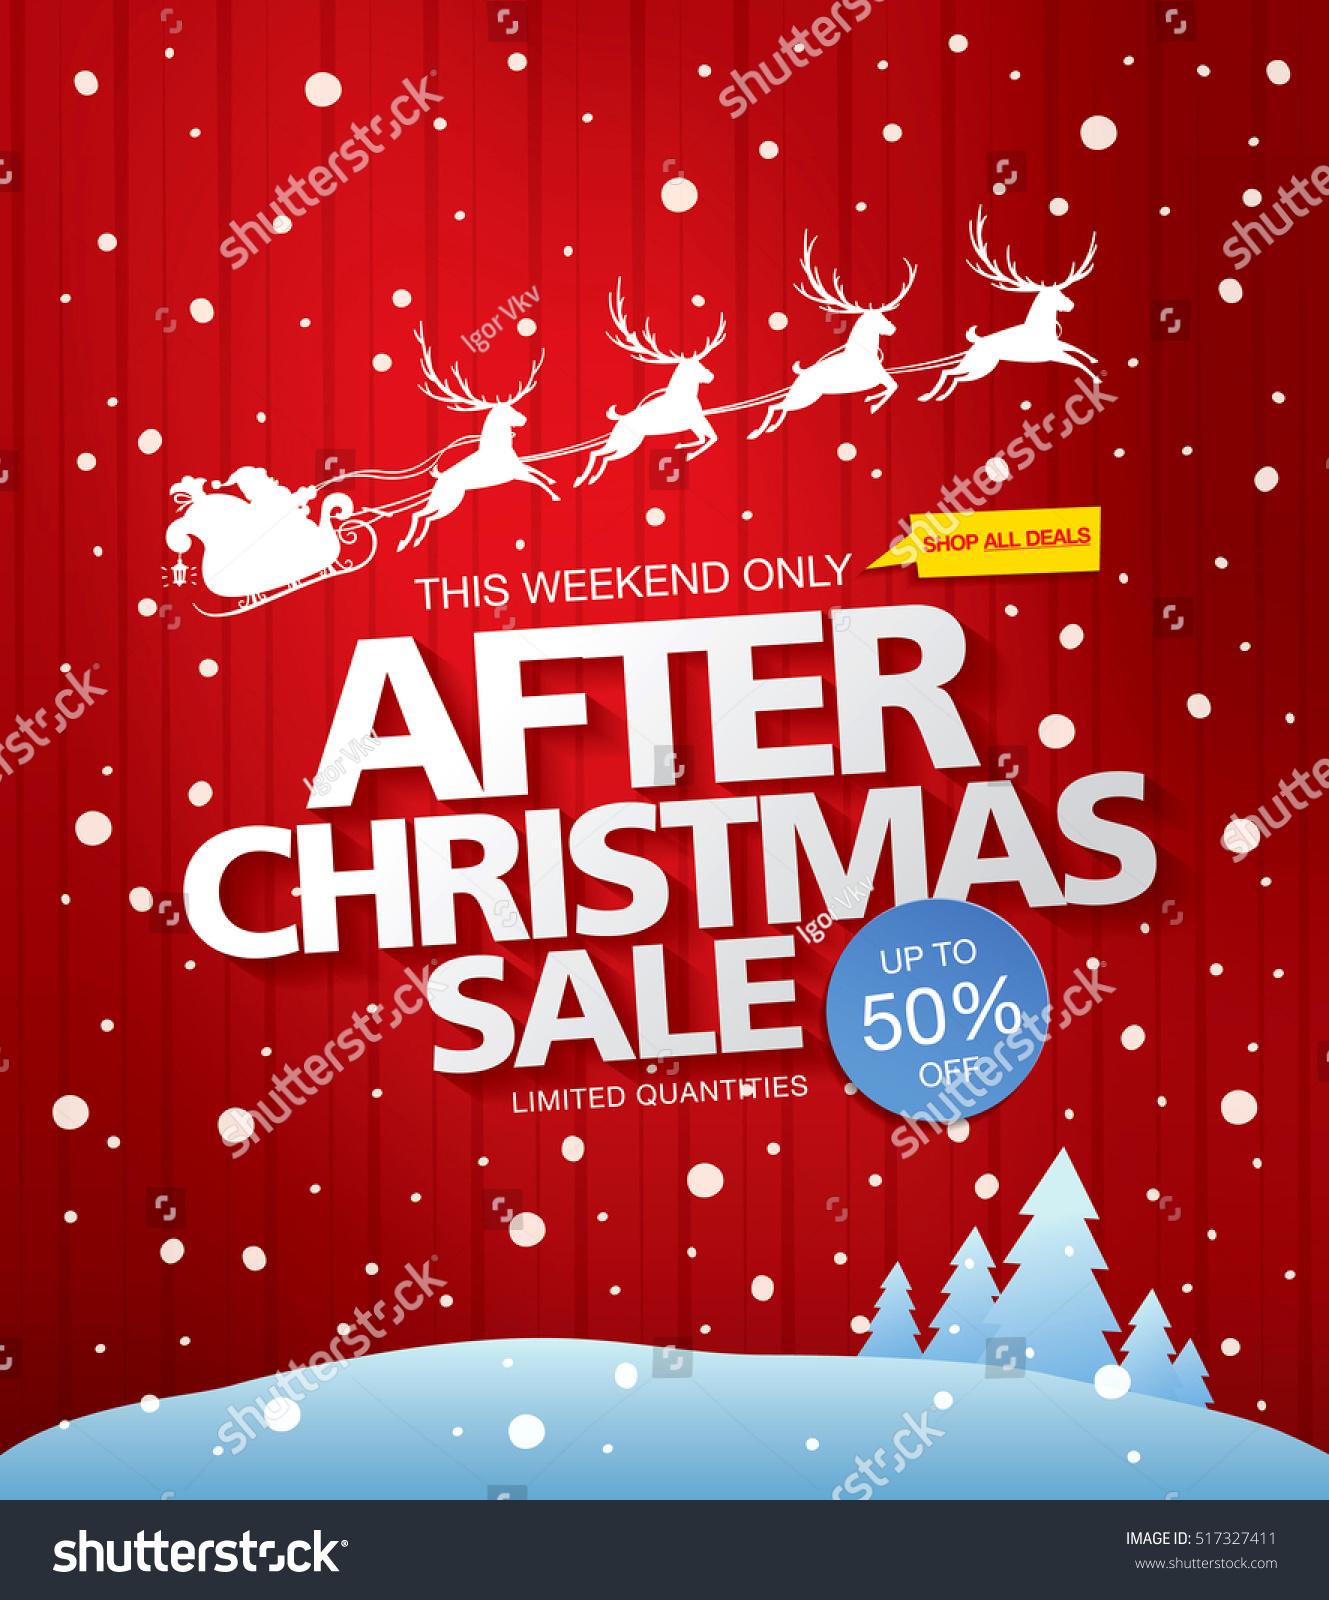 after christmas sale hours at walmart